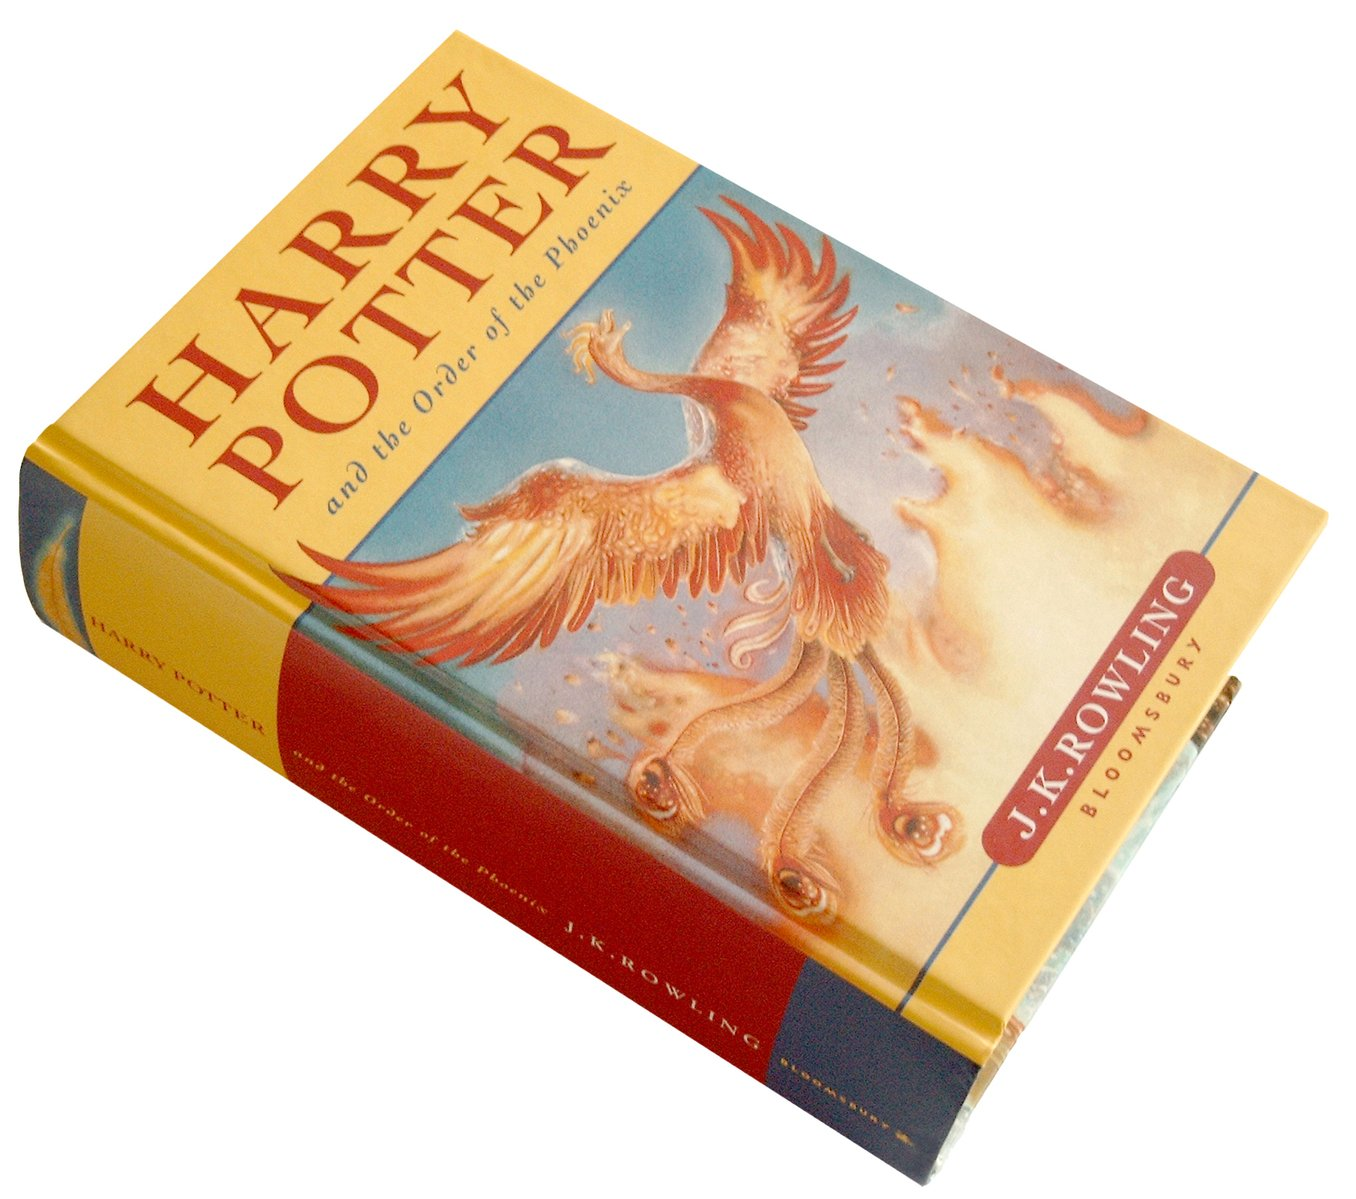 Harry Potter Book Five : Free harry potter book stock photo freeimages